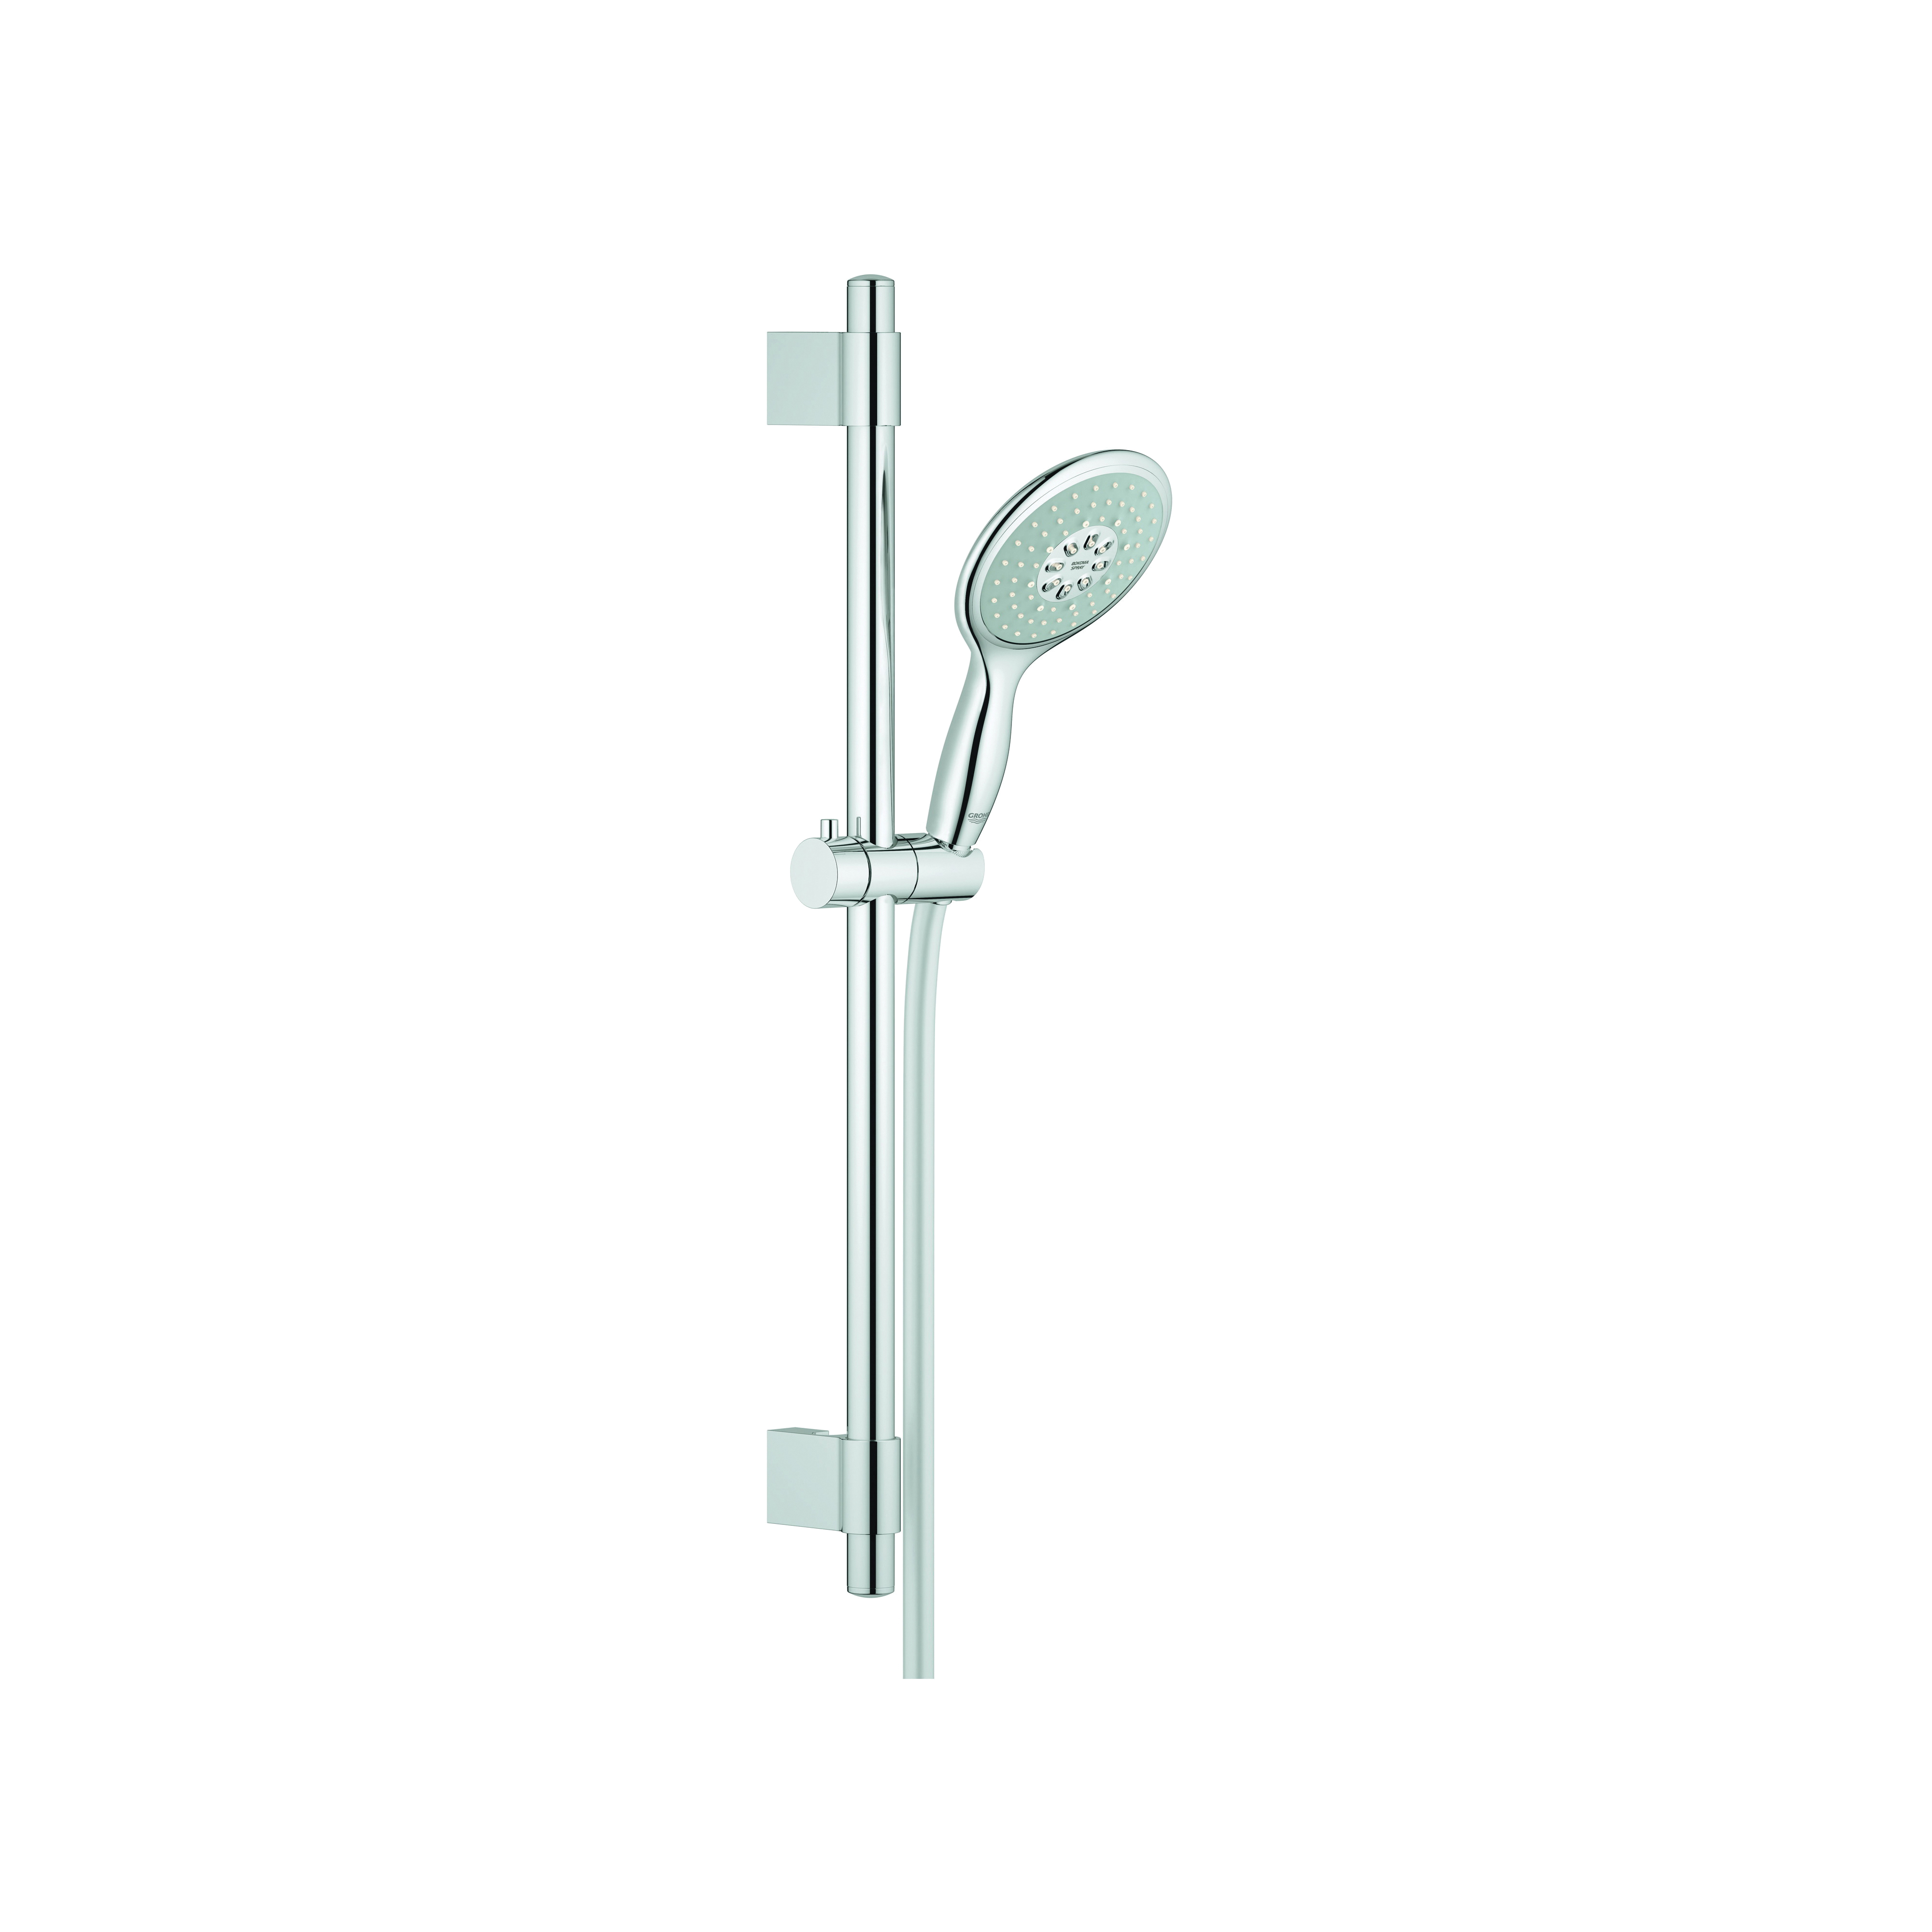 GROHE 27736000 Power&Soul® 130 Shower Set, 2.5 gpm, 69 in L Hose, G-1/2, Slide Bar: Yes, Chrome Plated, Import